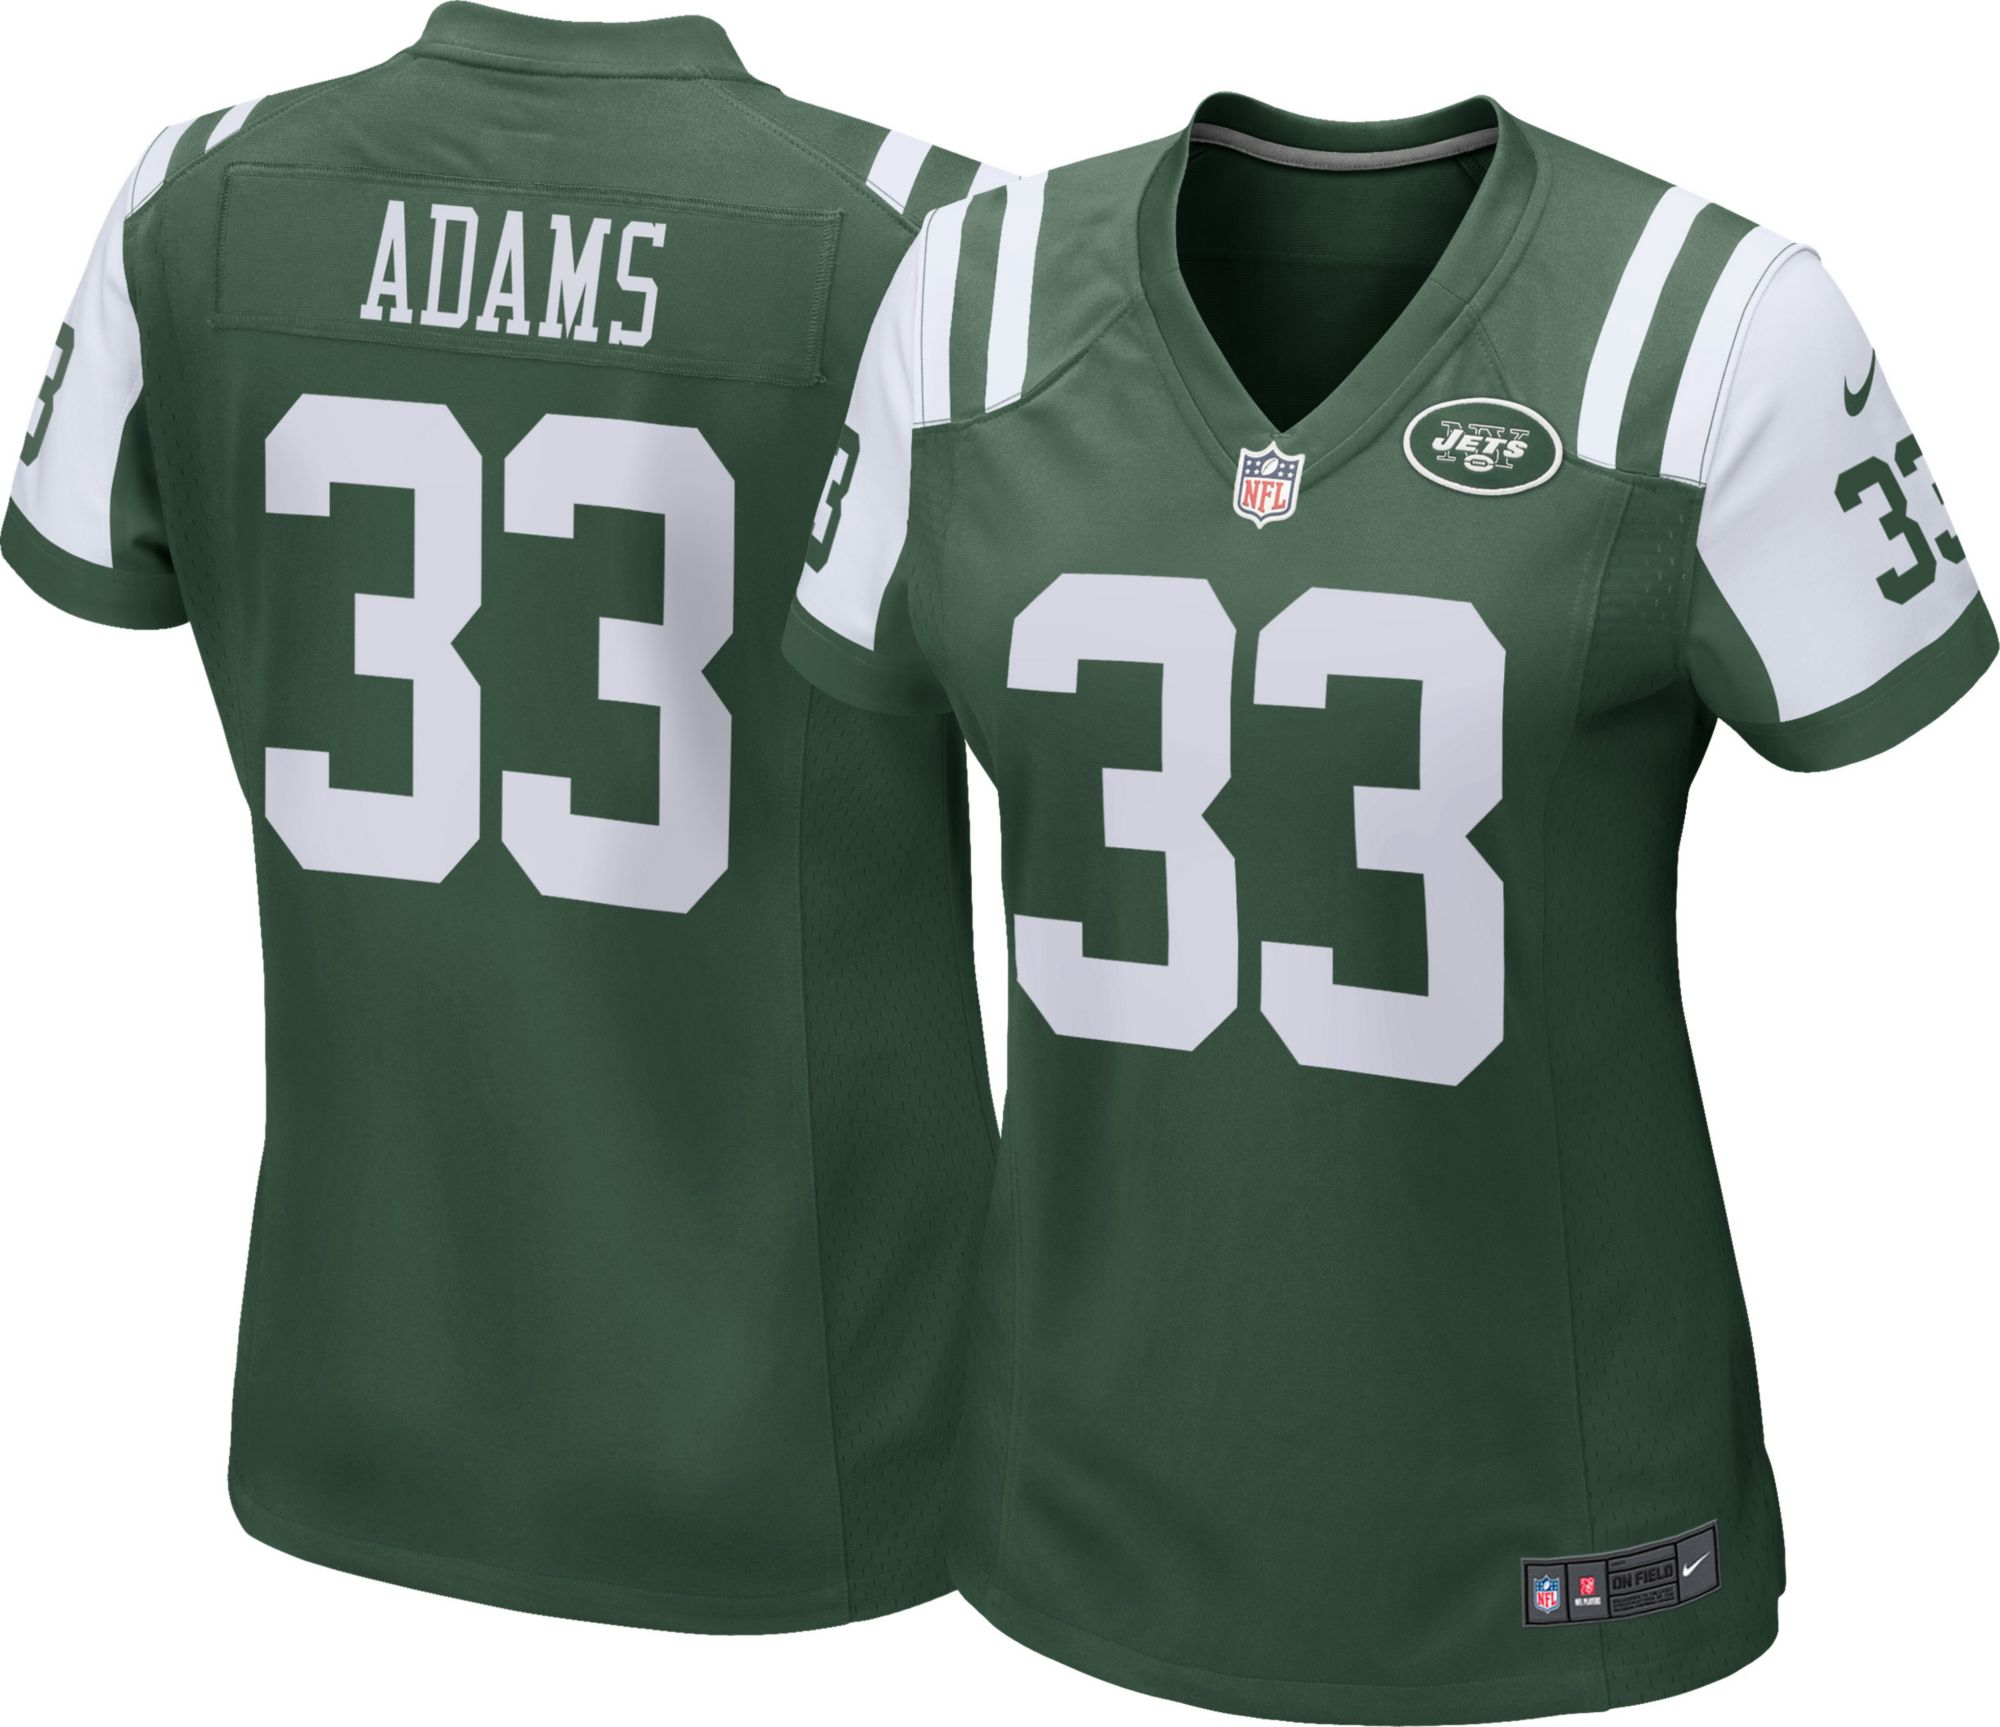 jamal adams jersey for sale